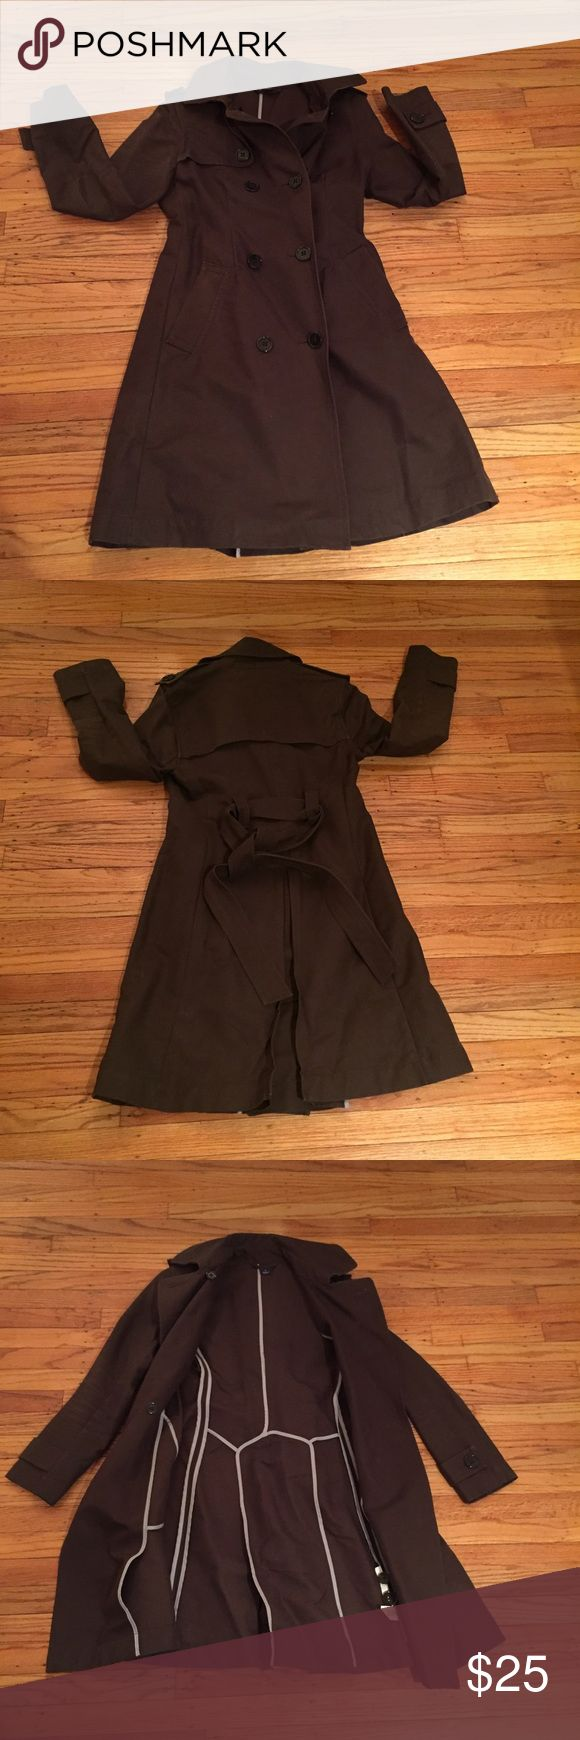 Size: S // GAP Brown Trench Coat Size: S // GAP Brown Trench Coat // 100% Cotton // Shows very minor signs of wear // GUC GAP Jackets & Coats Trench Coats